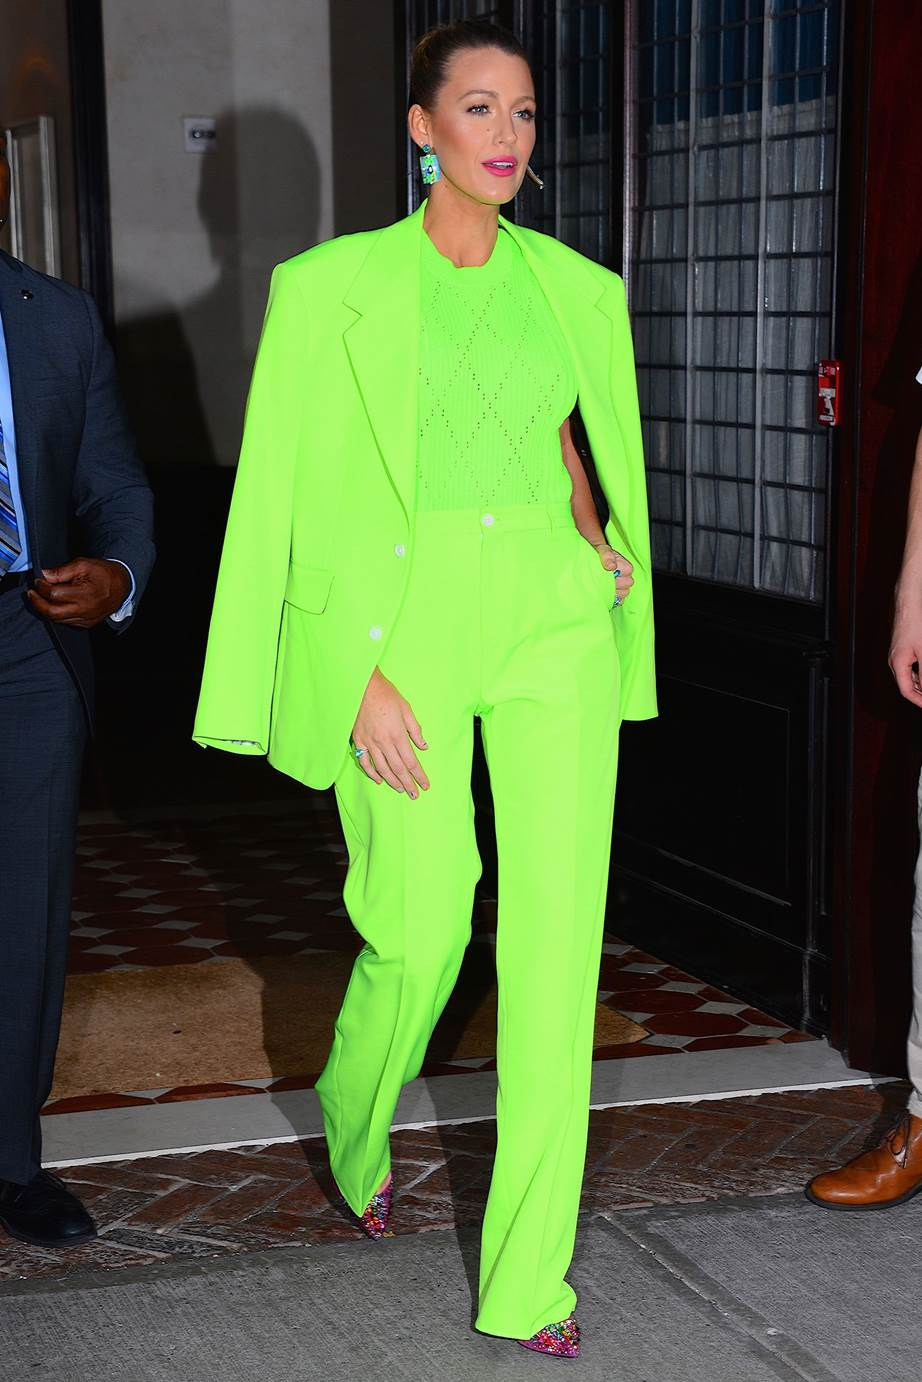 blake lively in neon monochrome pantsuit